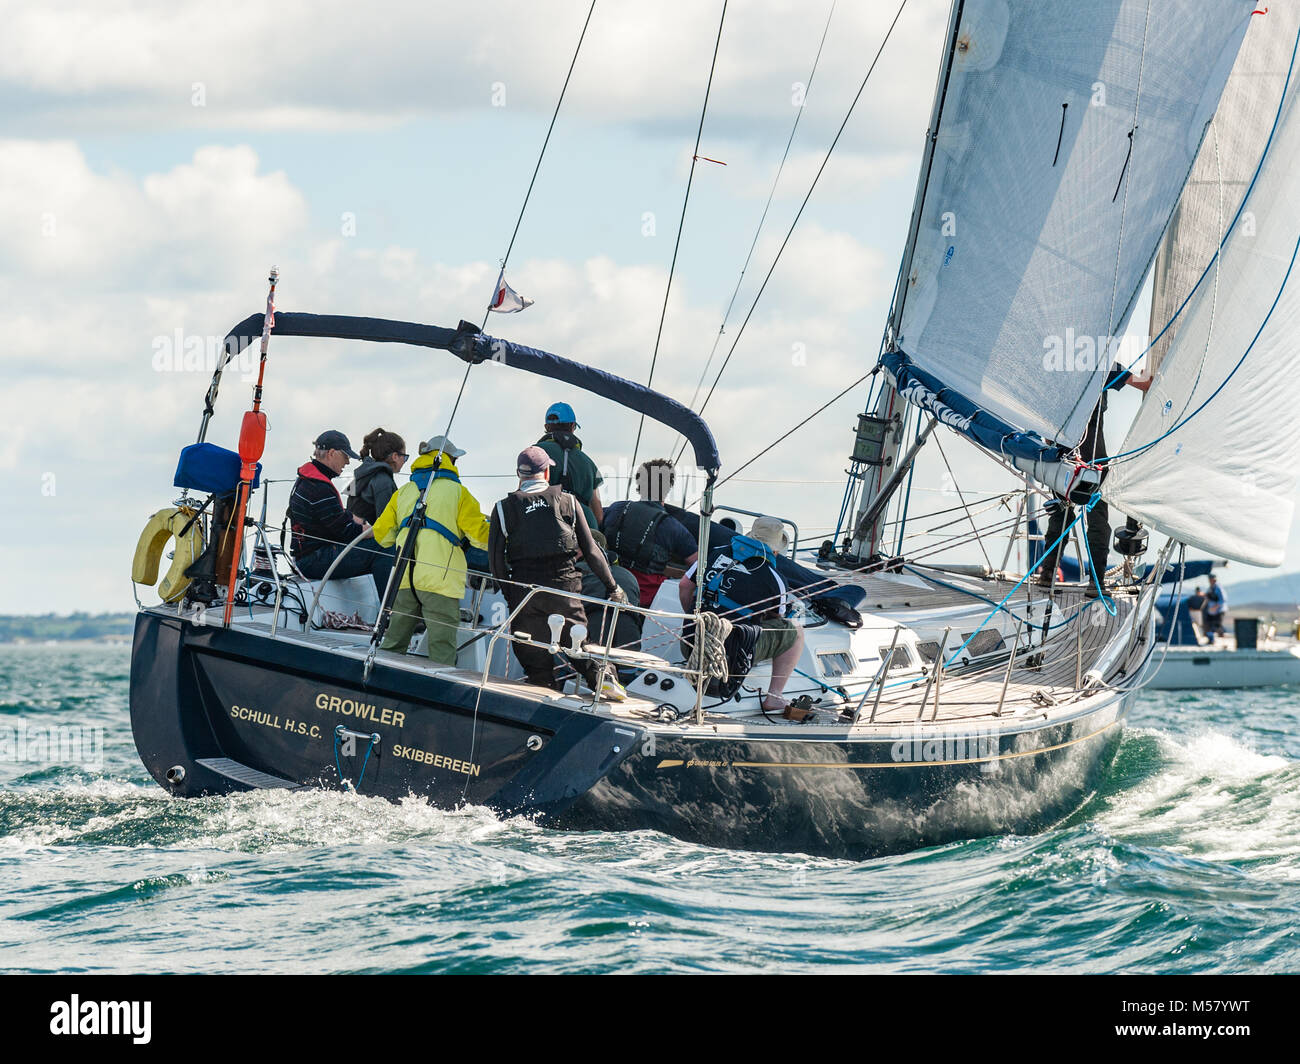 racing-yacht-growler-competes-during-the